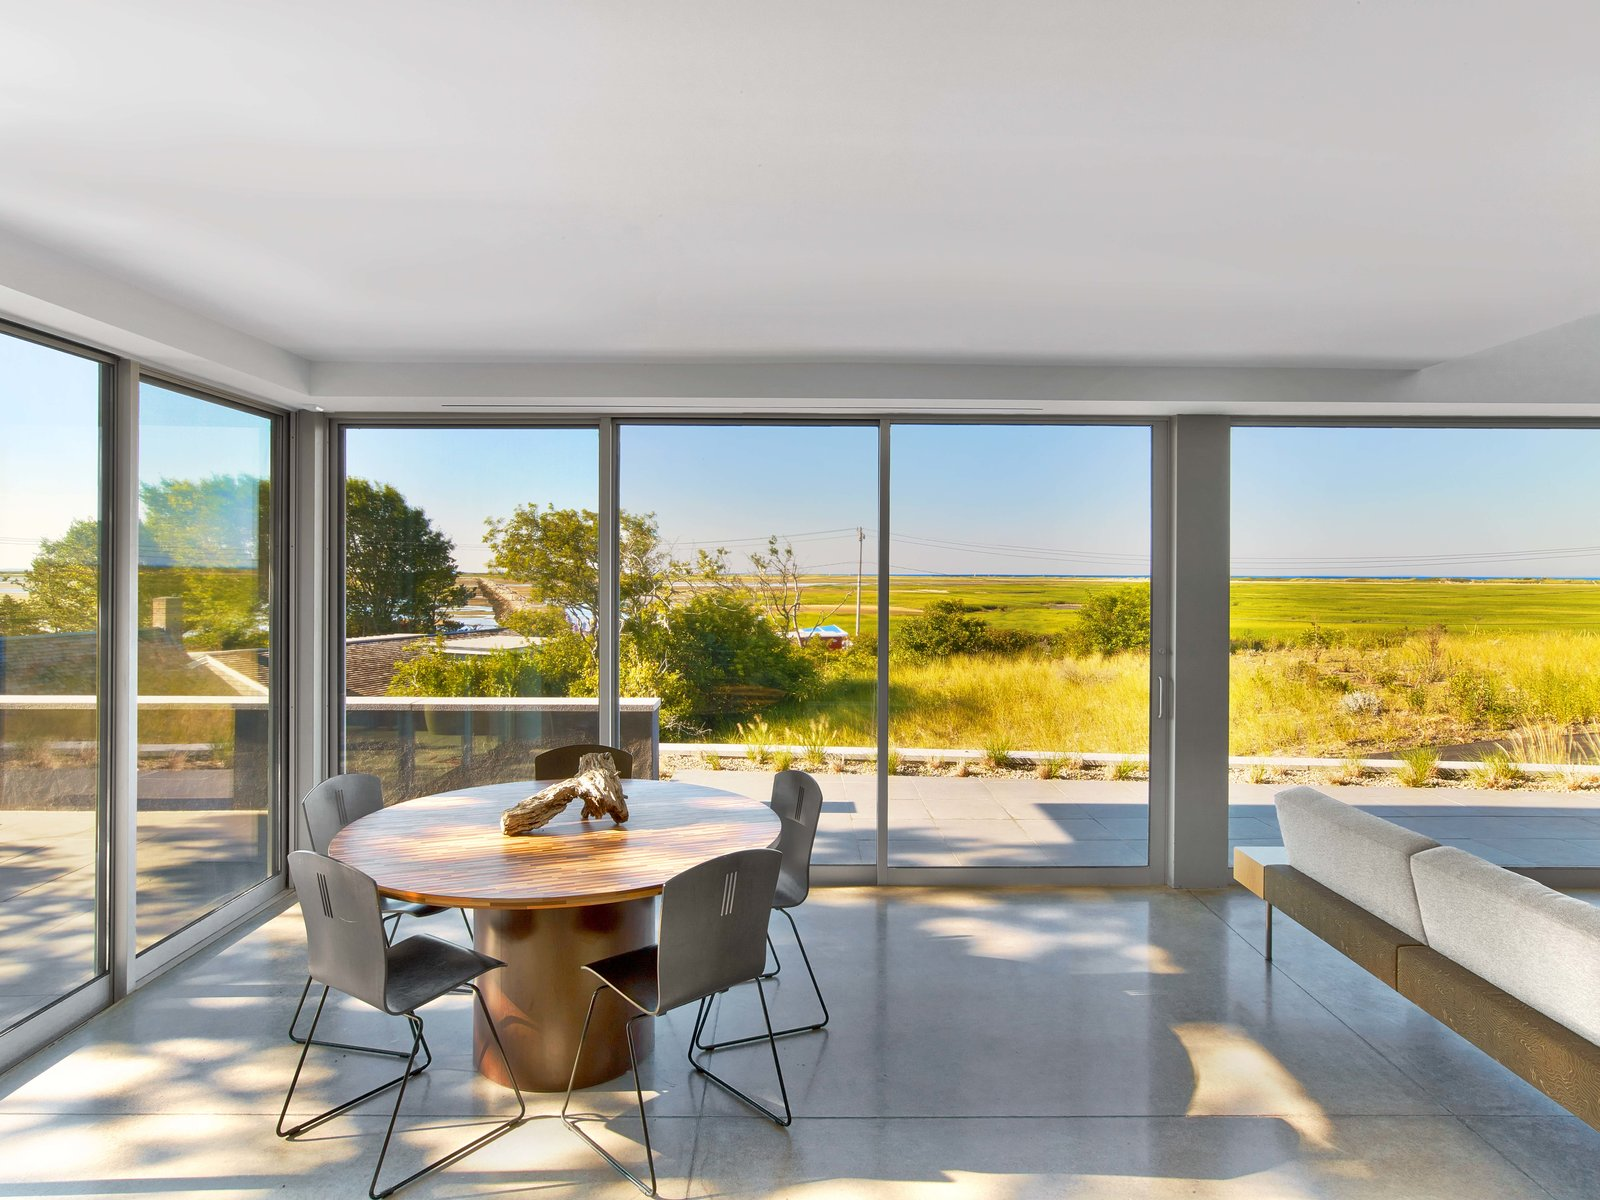 Dining Room, Table, Chair, and Concrete Floor  Cape Cod - Beach House by Hariri & Hariri Architecture